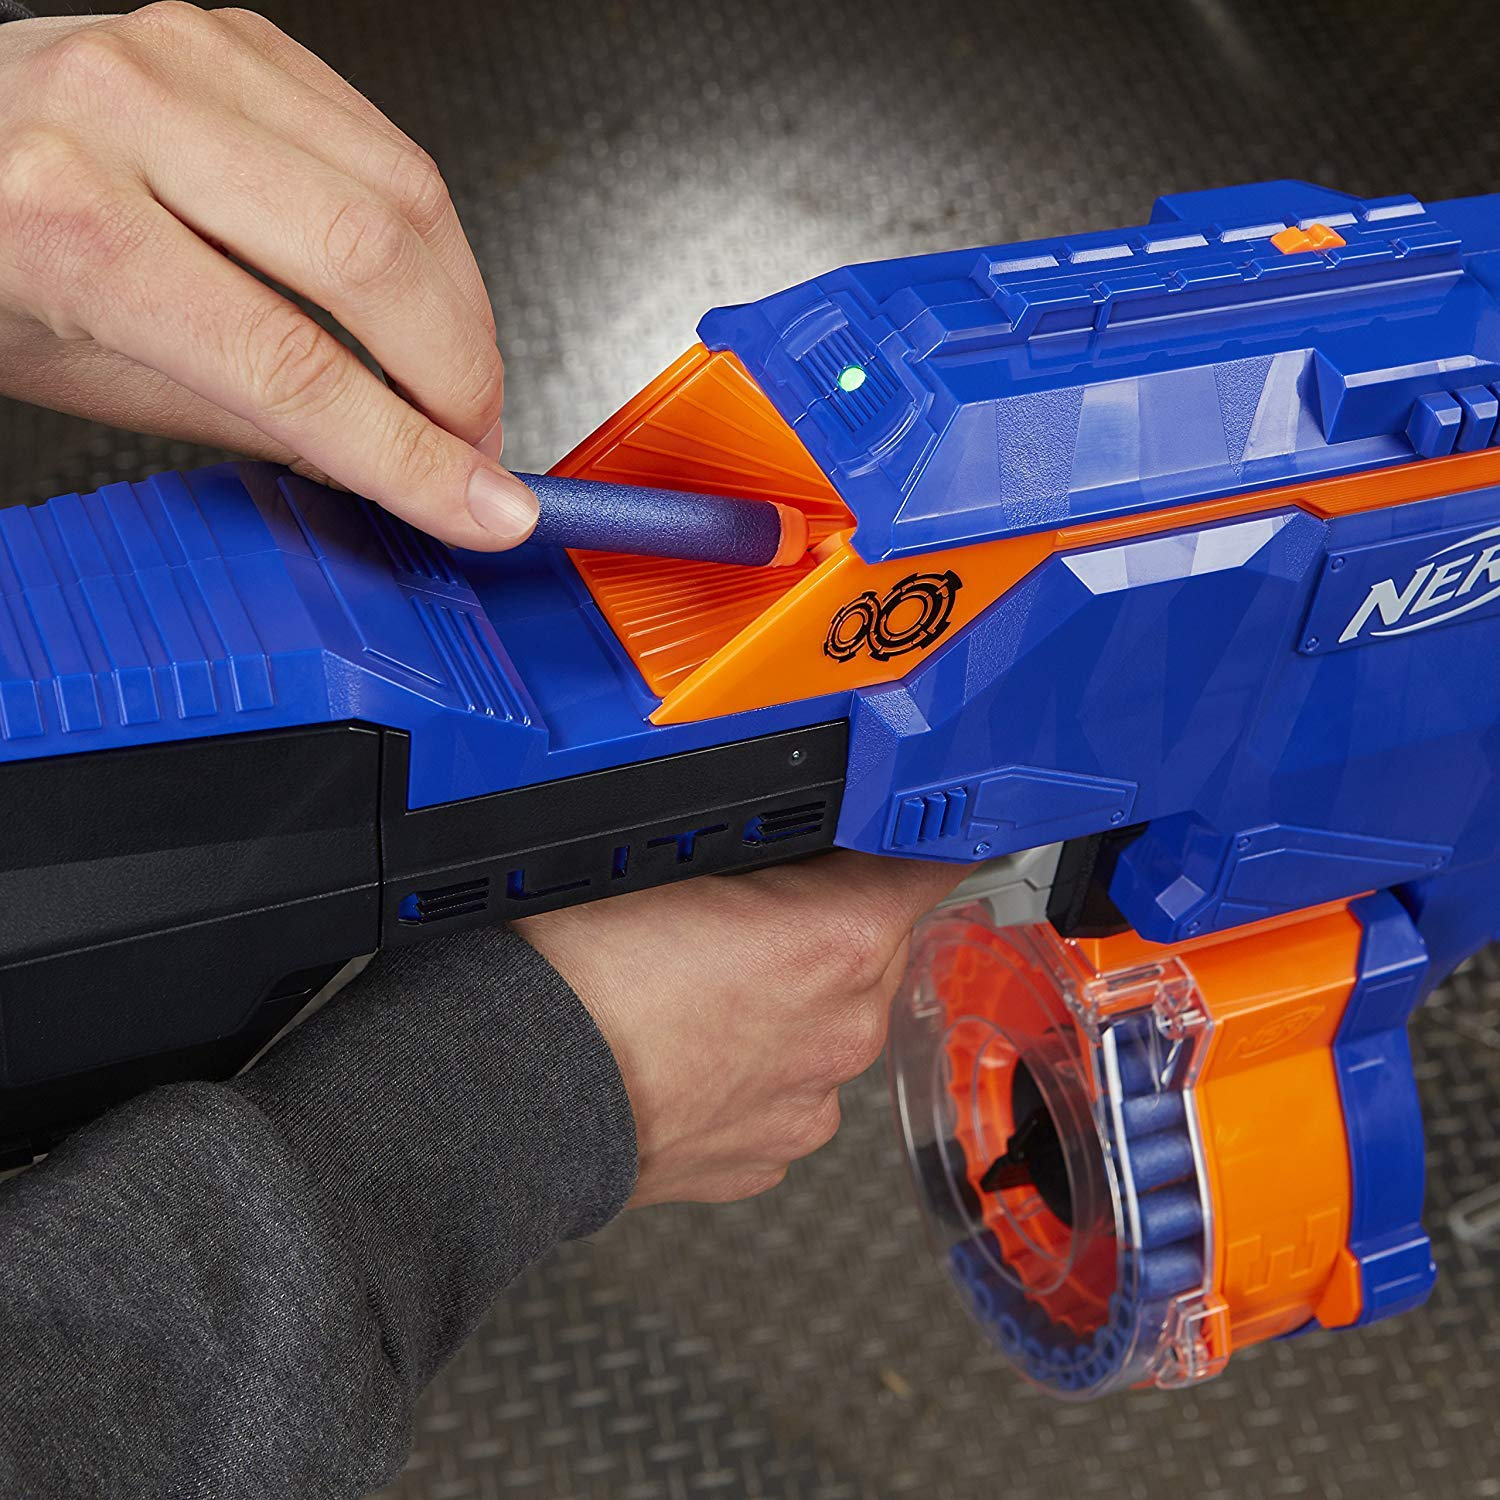 NERF Infinus N-Strike Elite Toy Motorized Blaster with Speed-Load Technology (FFP) by NERF (Image #5)